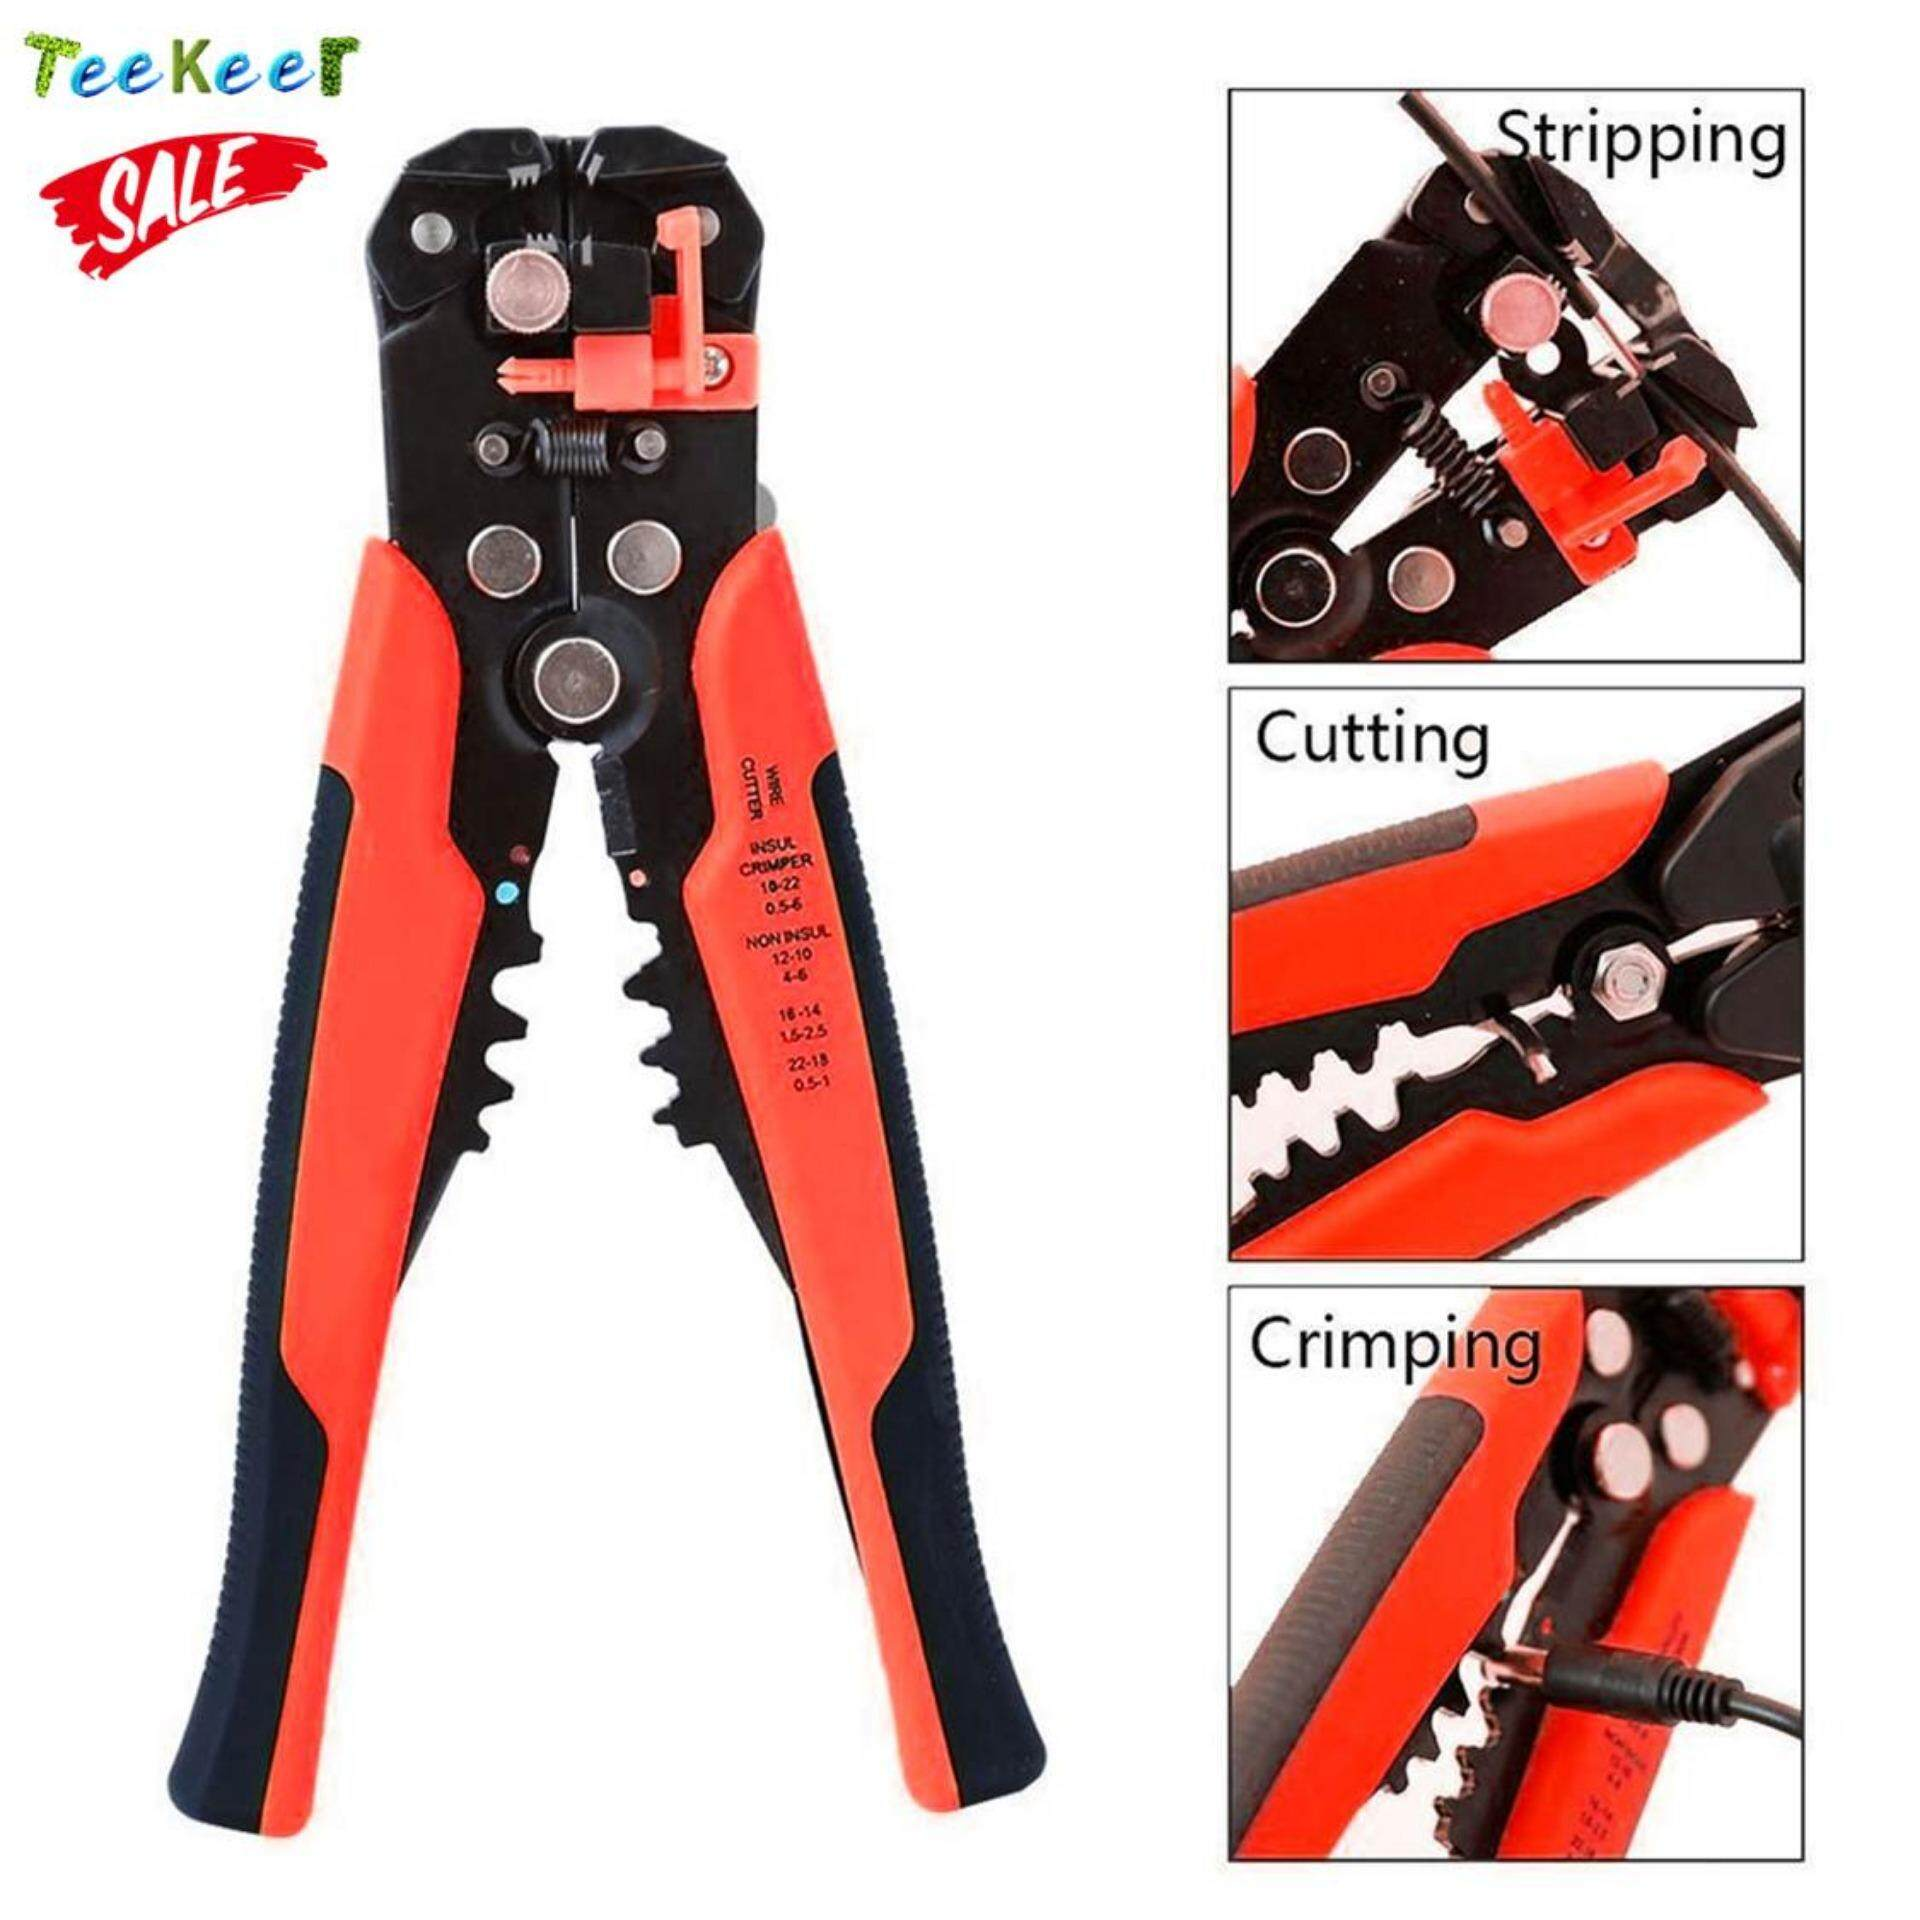 Teekeer Wire Stripping Tool Self-adjusting Cable Crimper Automatic Wire Stripper/ Cutting Pliers Tool For Industry 10-22 AWG Stranded Wire Cutting (Red+Black) - intl